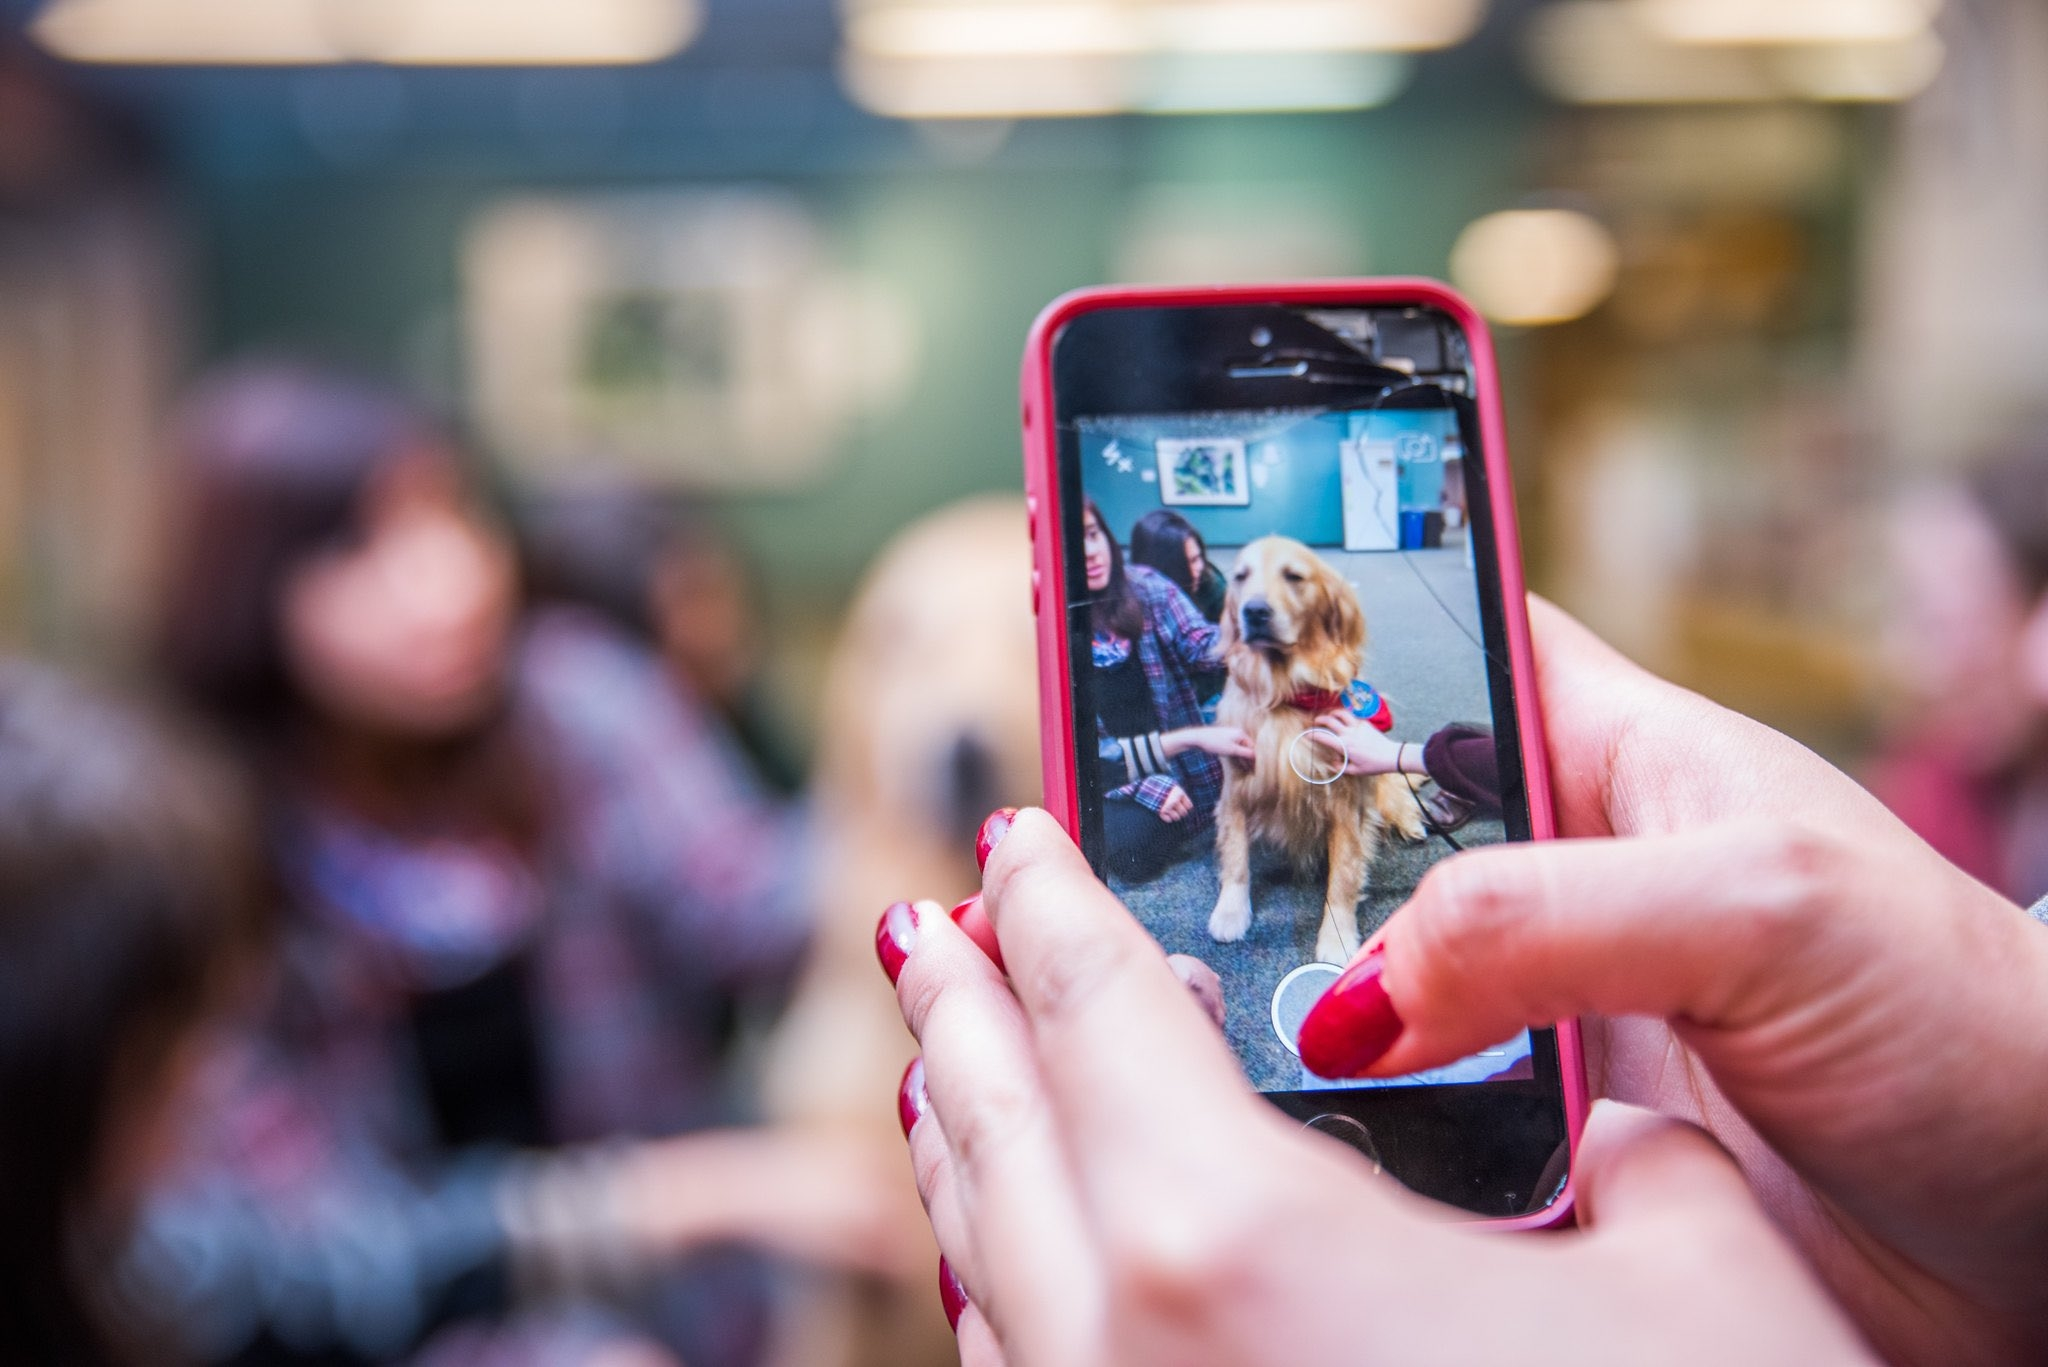 A photo of a smartphone screen with a dog in the frame